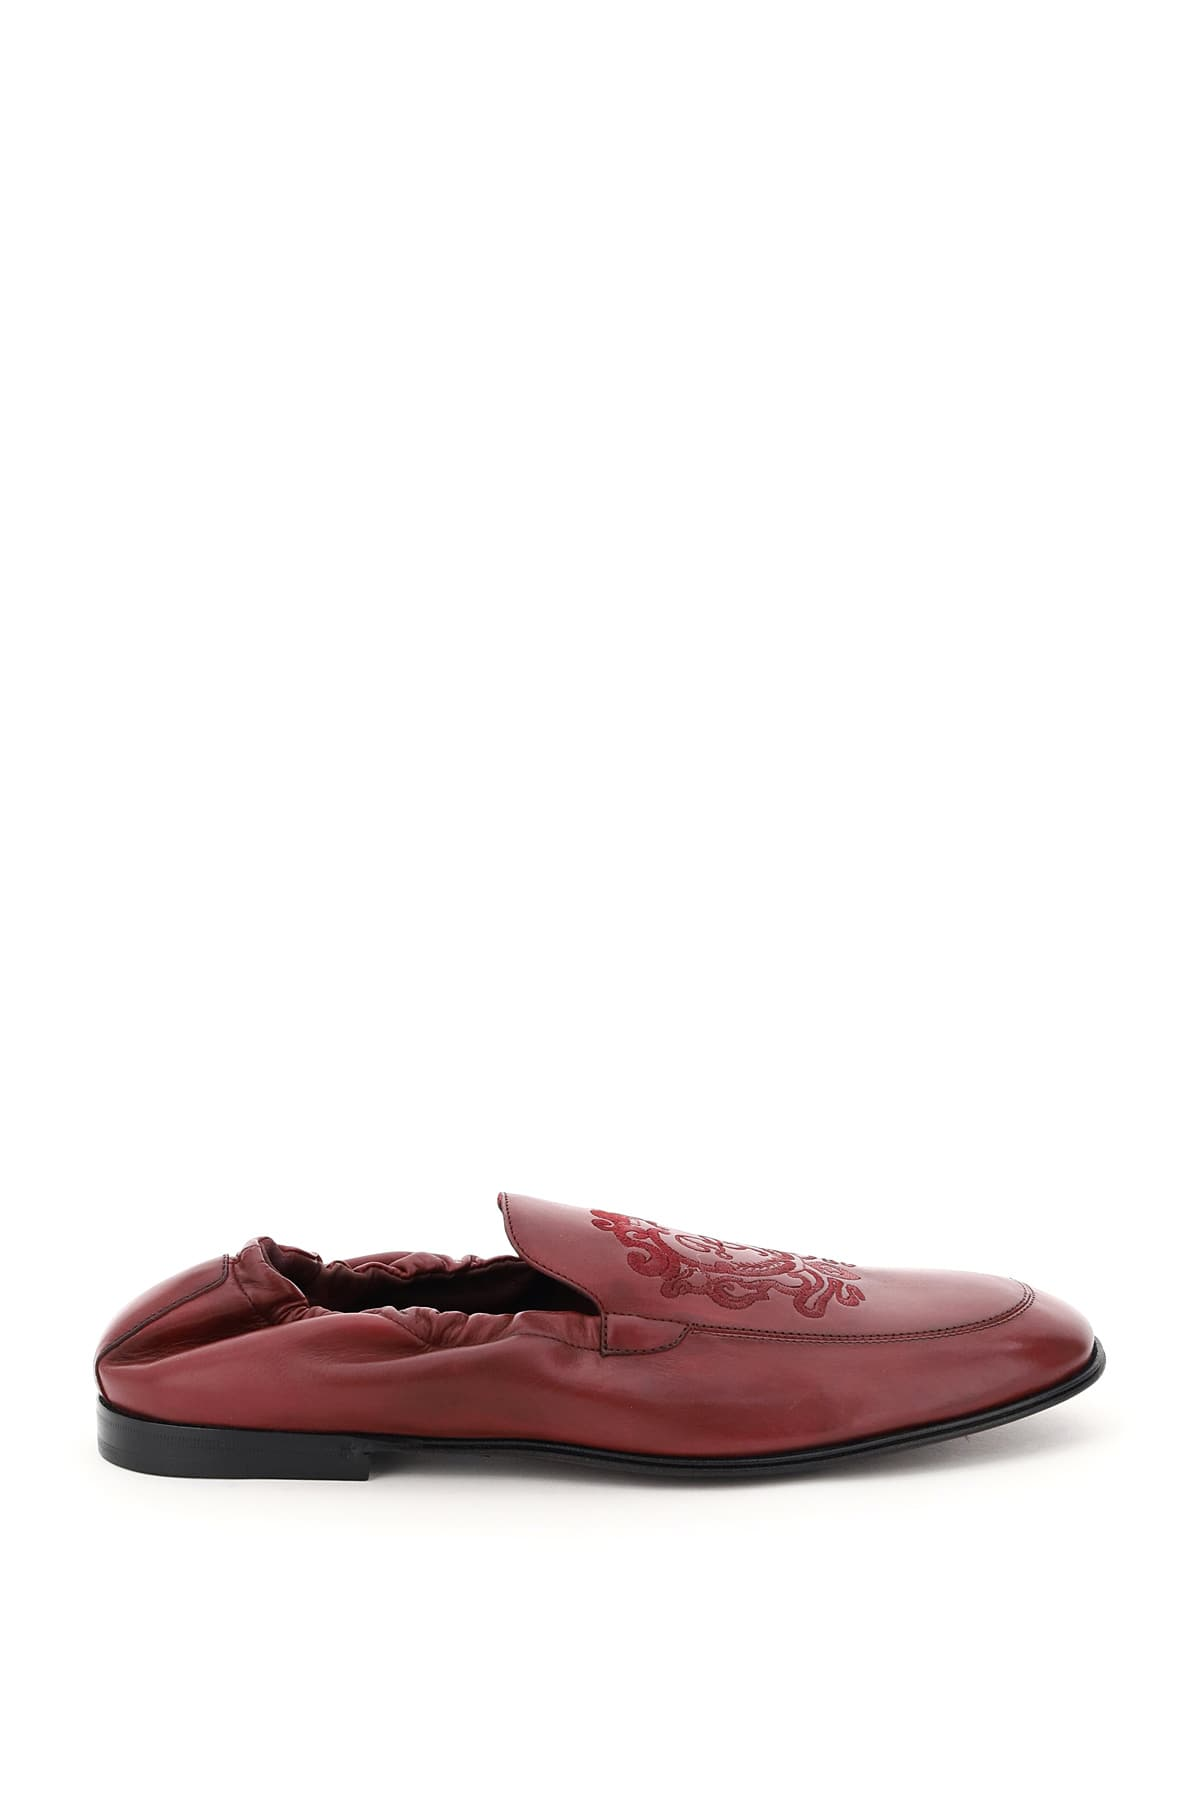 DOLCE & GABBANA ARIOSTO LOAFERS WITH COAT OF ARMS EMBROIDERY 40 Purple, Red Leather